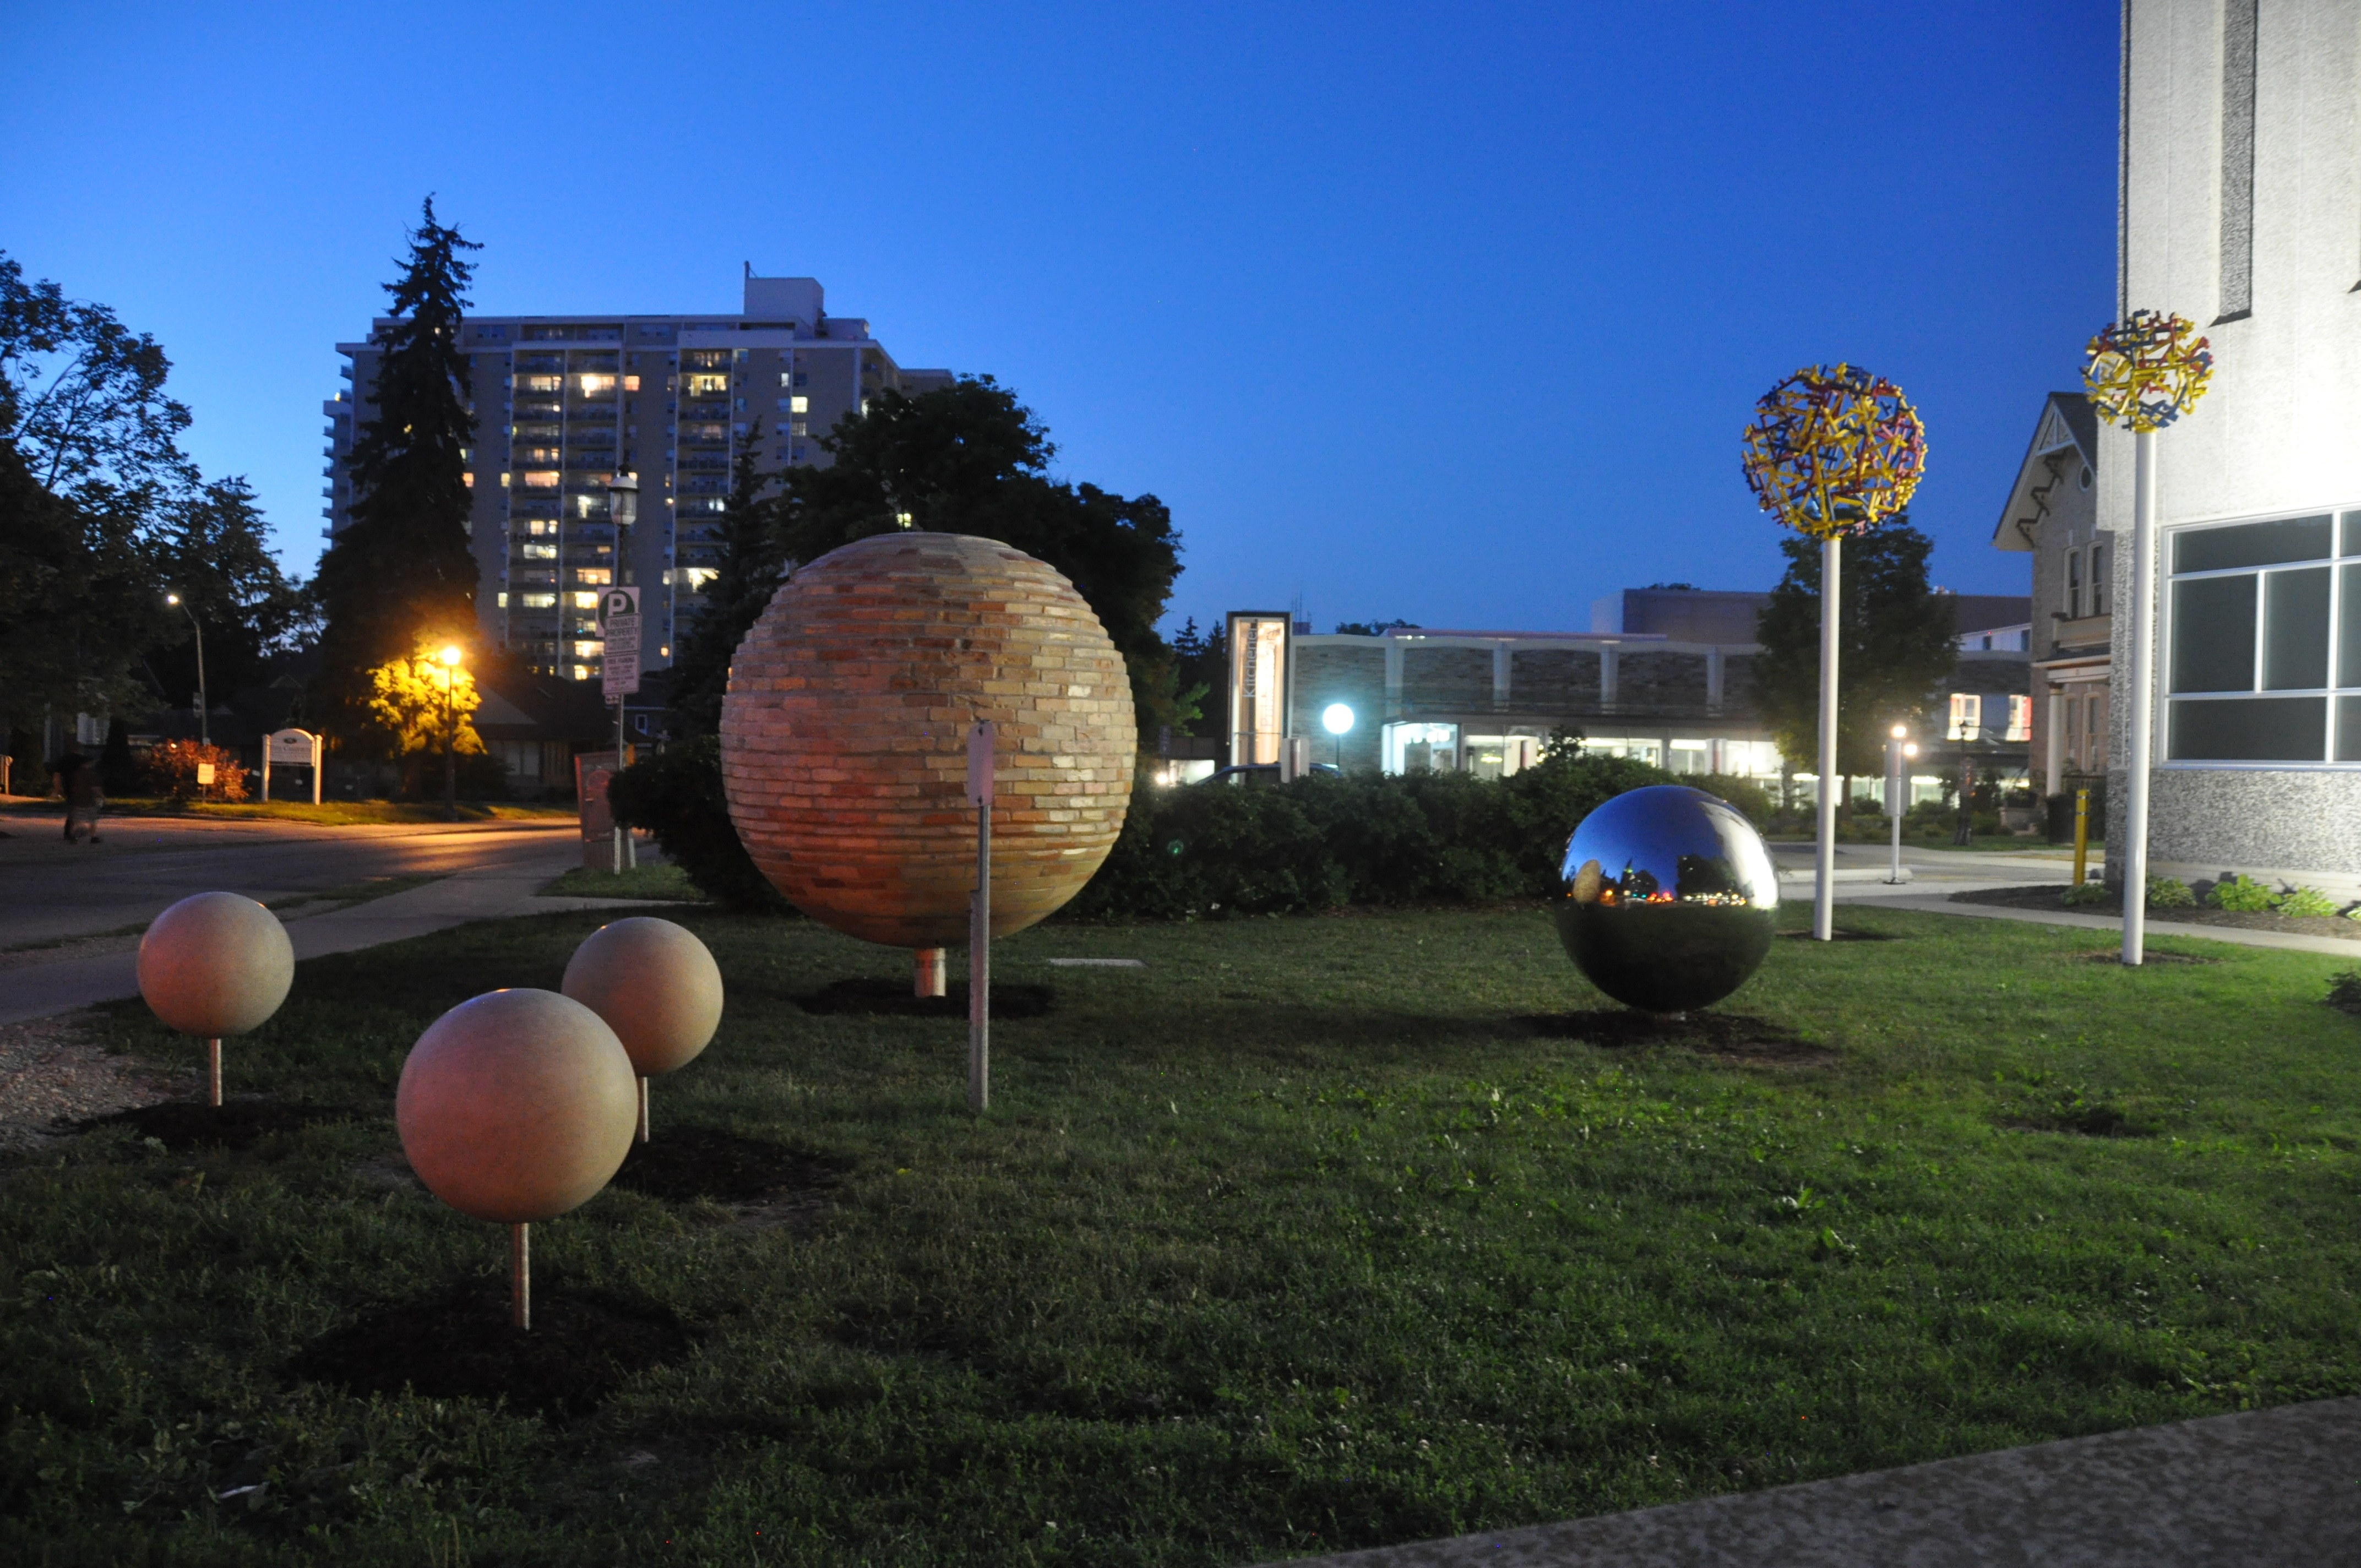 Image of past-present-future public art